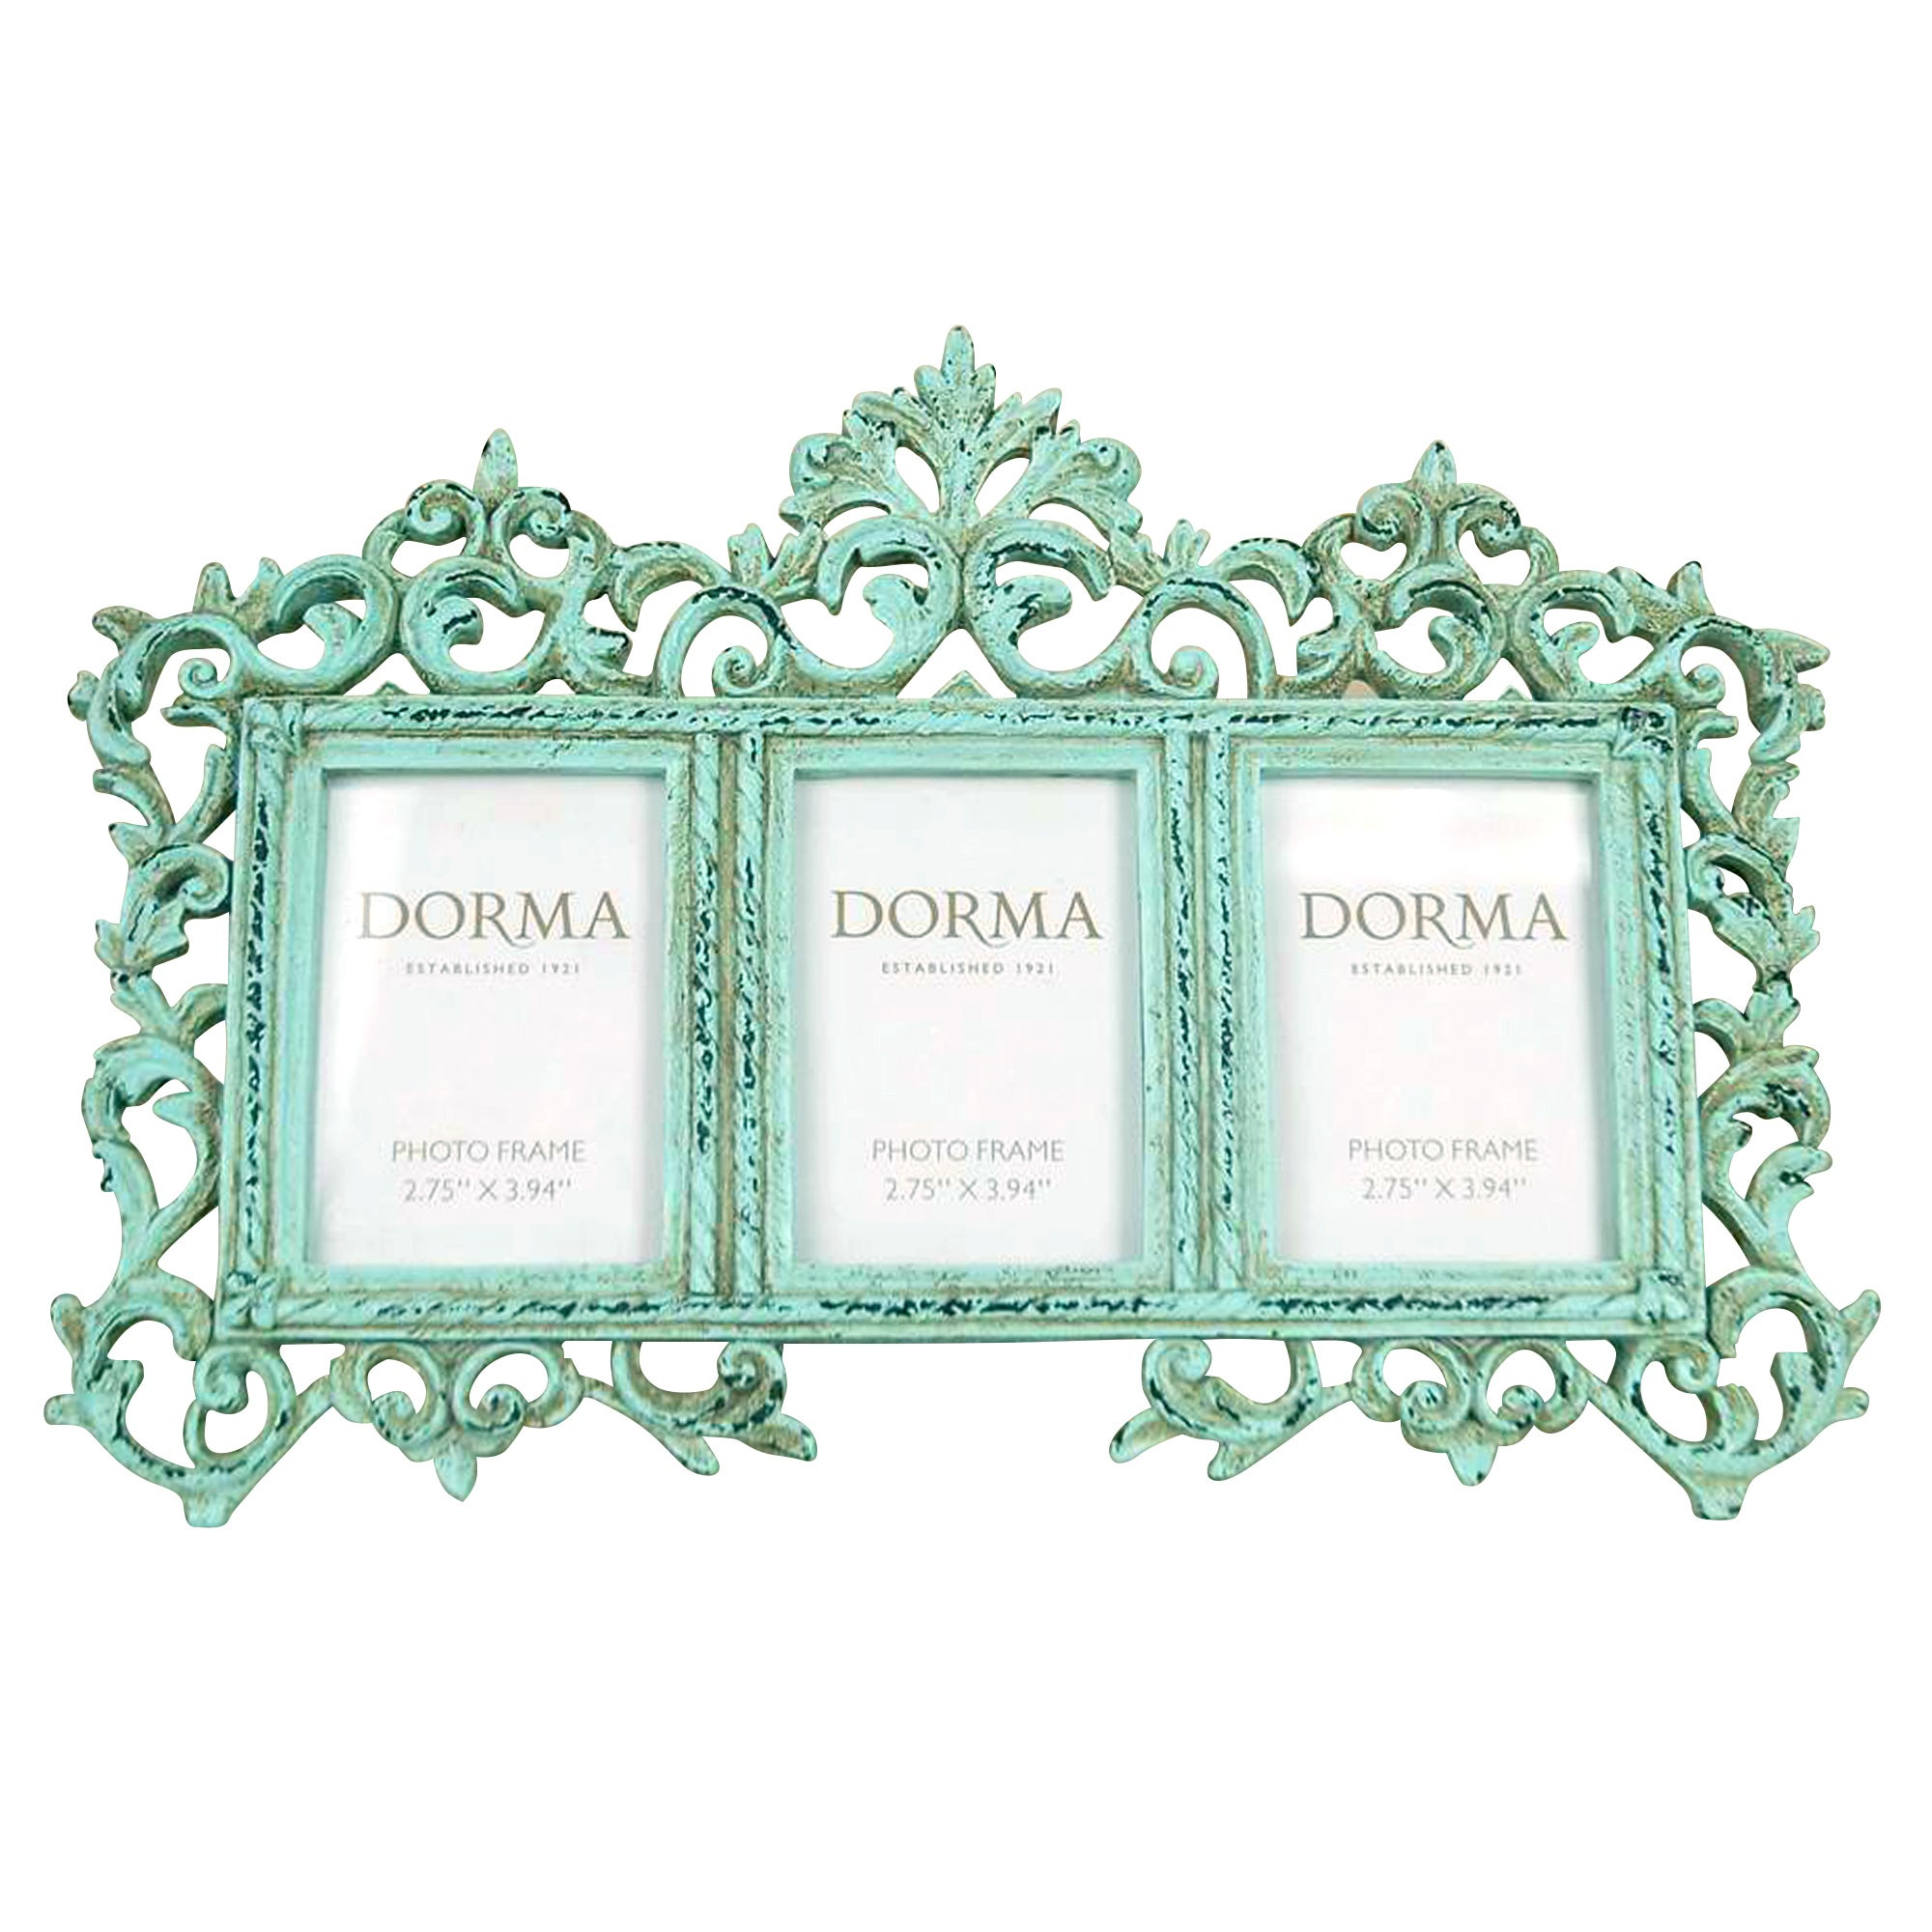 Green Dorma Ornate Photo Frame